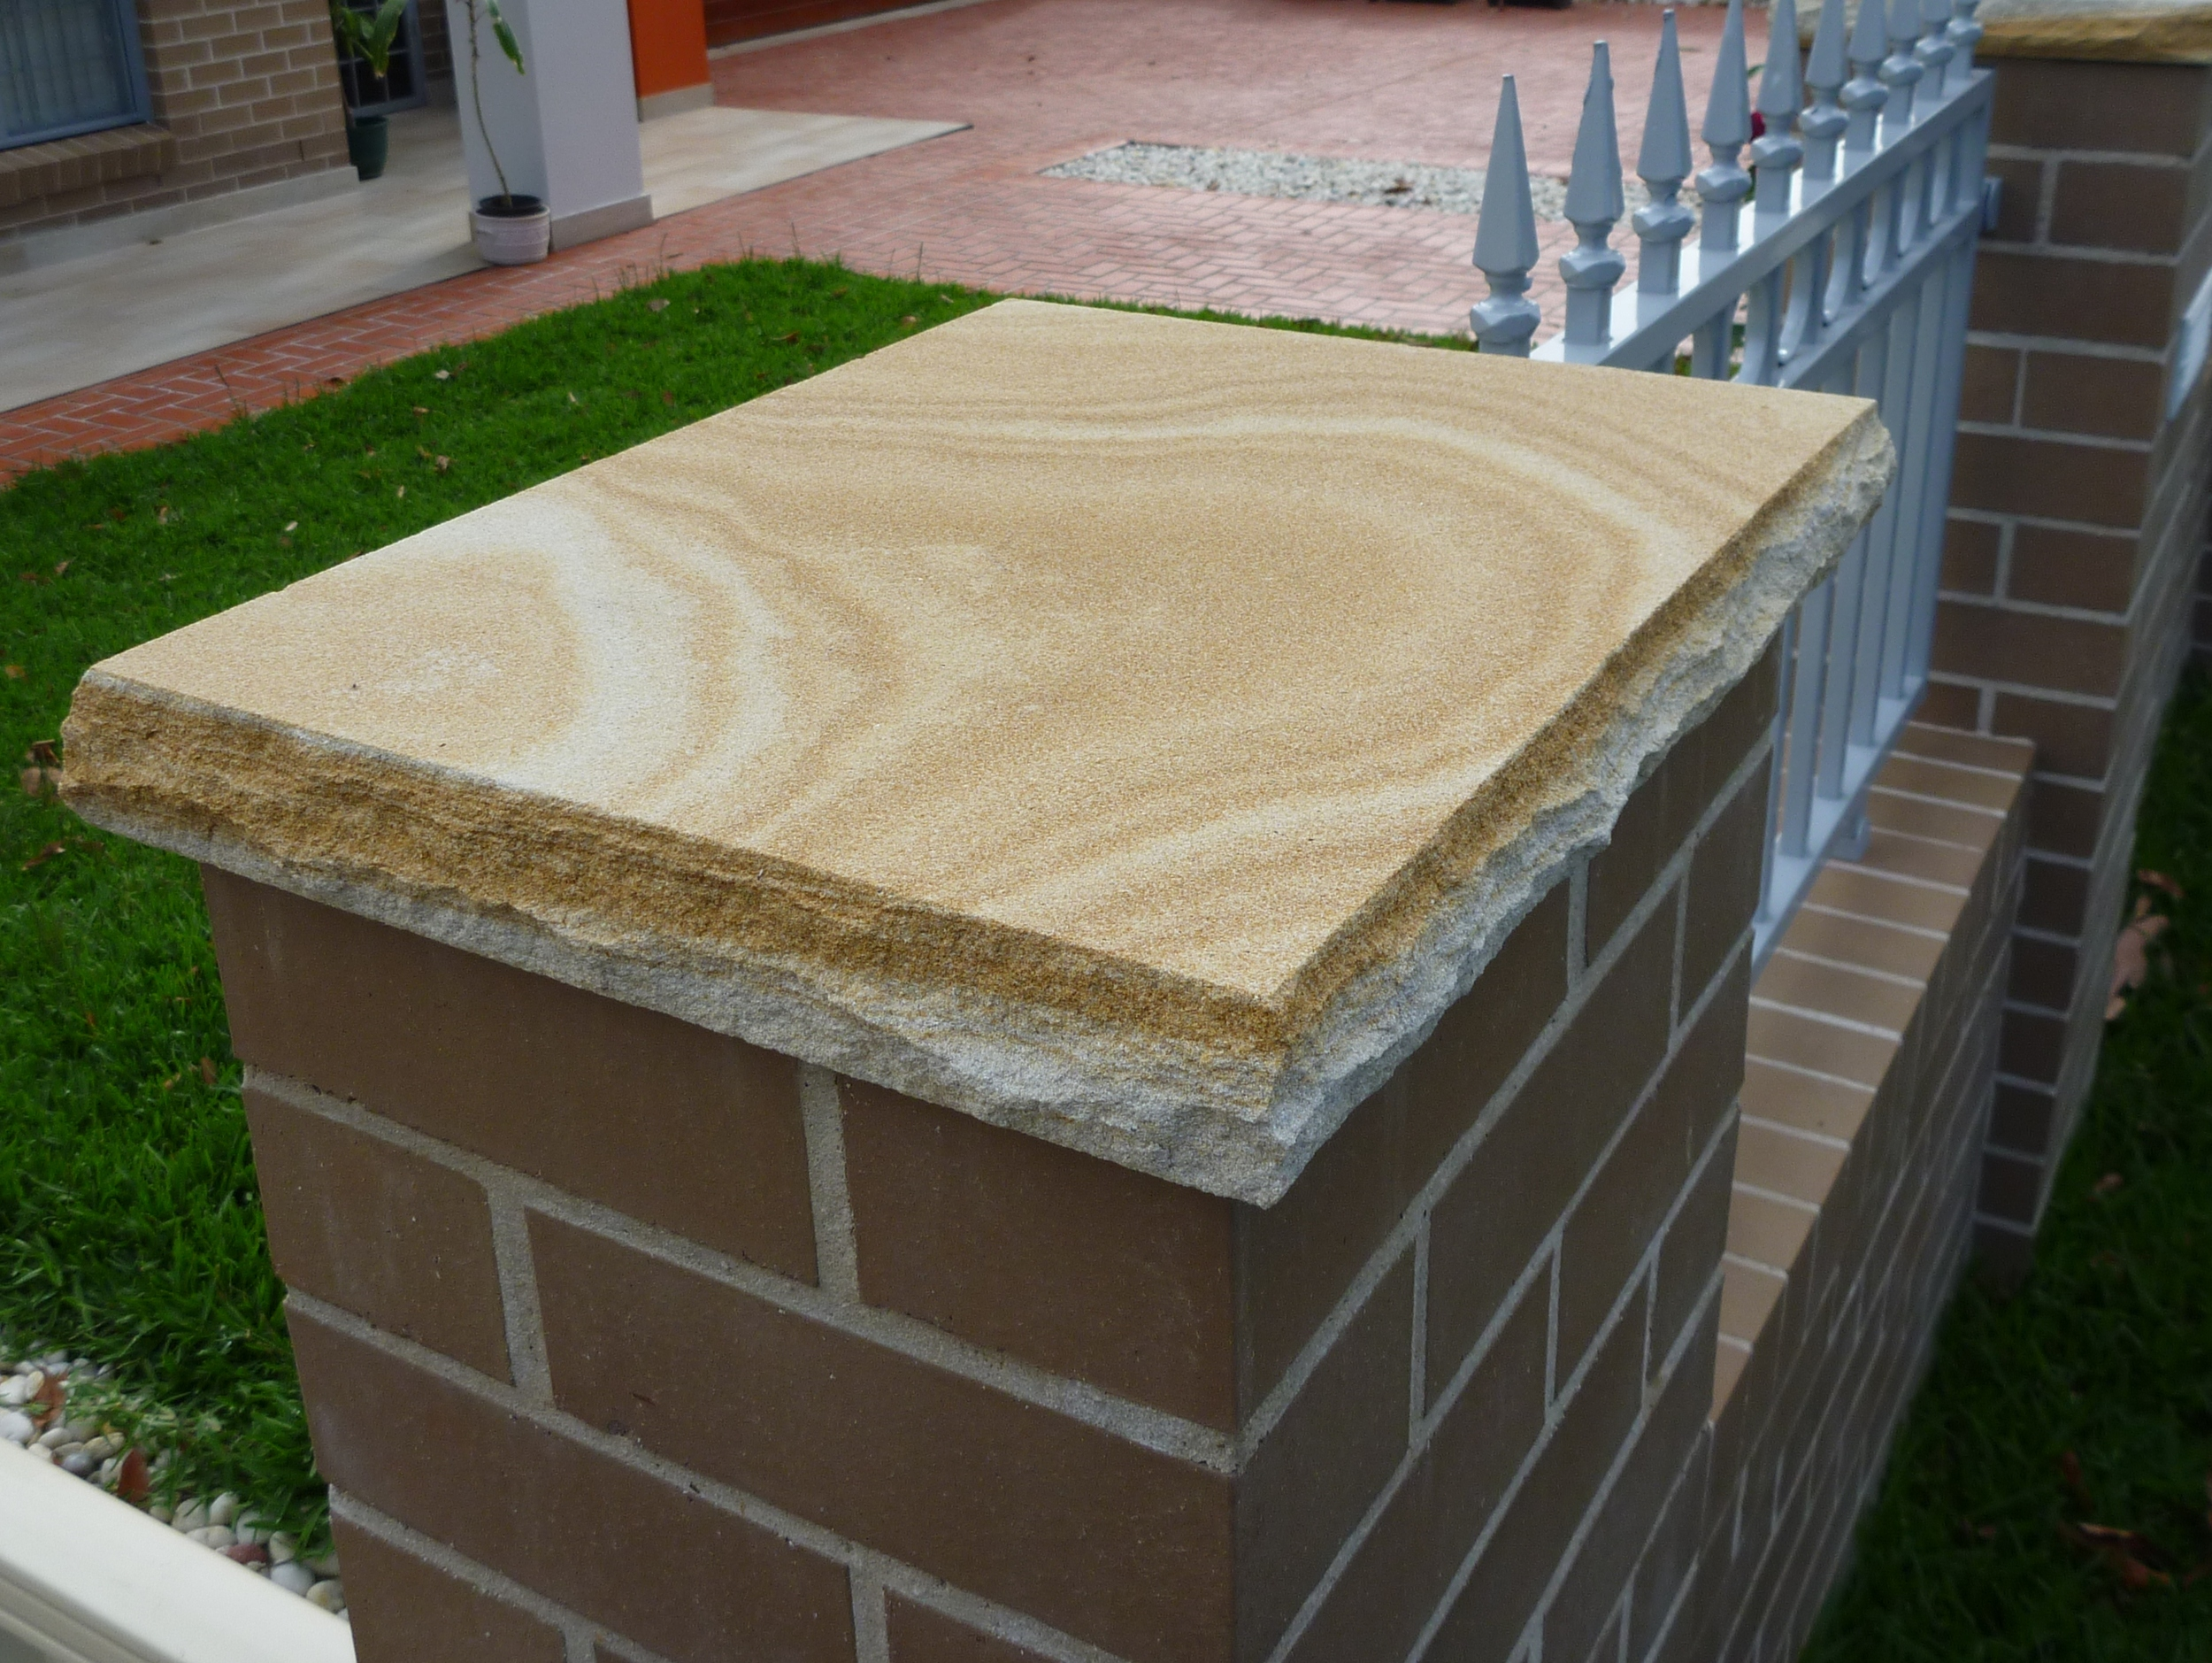 3. Sandstone pier capping 40mm thick (1)